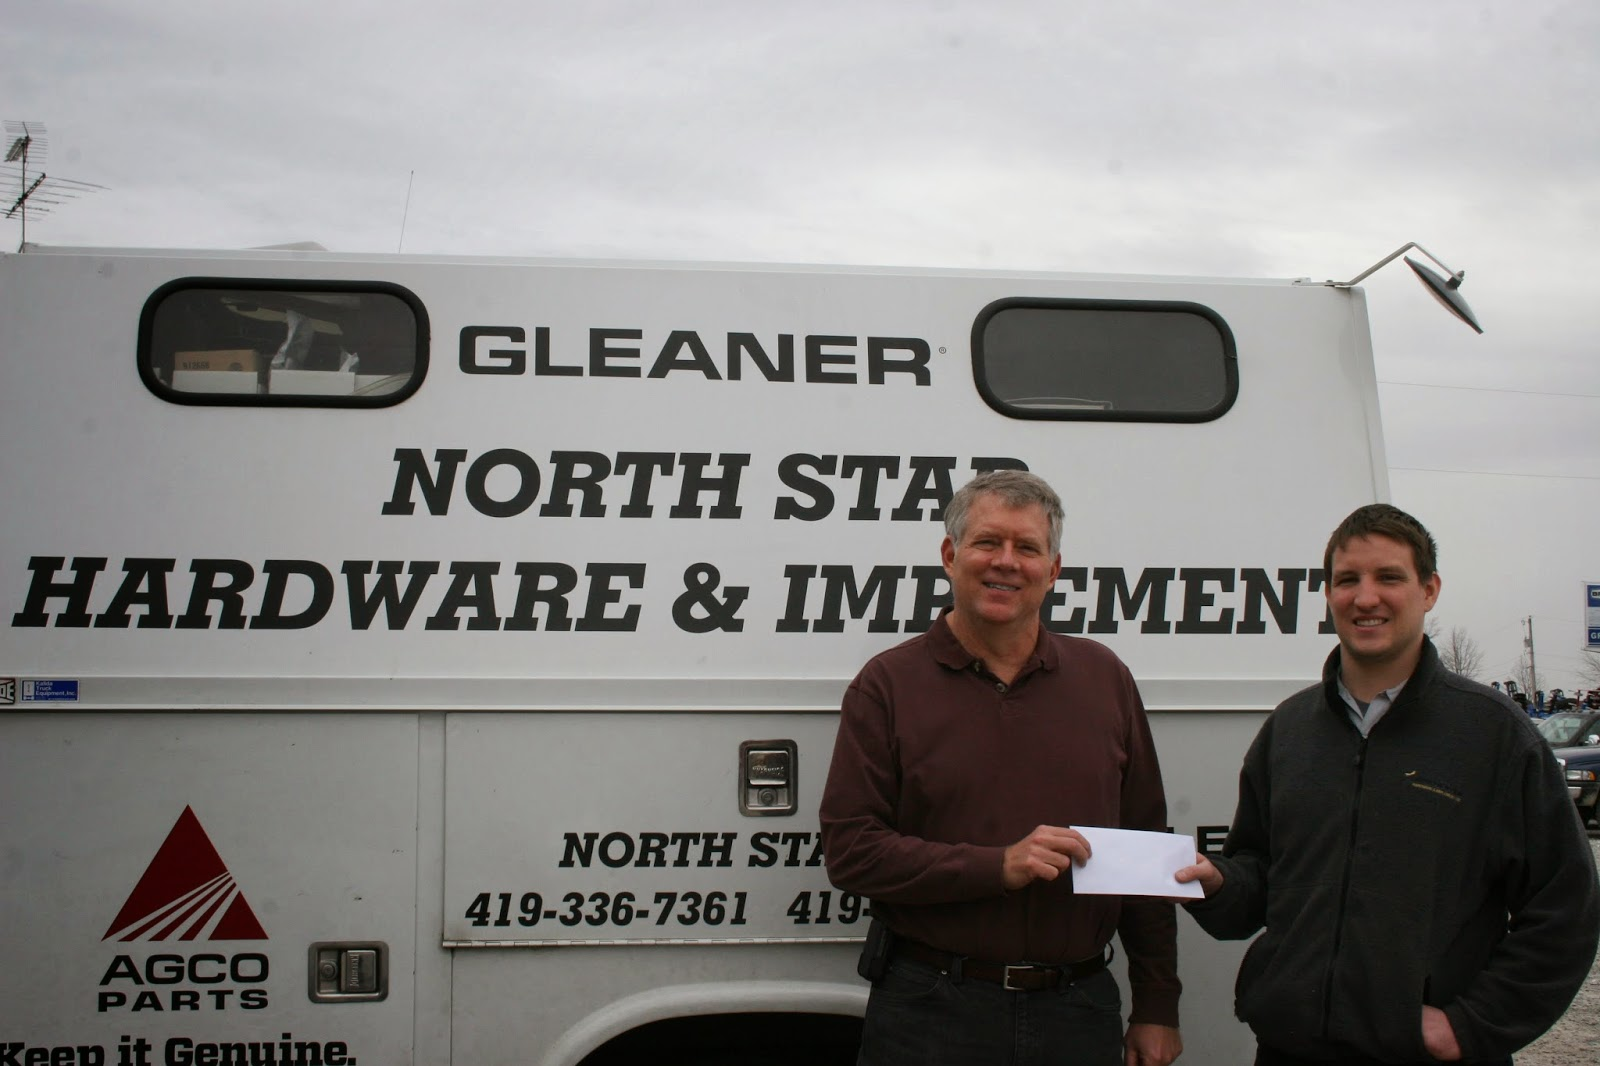 Ohio darke county north star - Steve Litchfield Darke Co Special Olympics Committee Is Showing Accepting A Donation From Ben Selhorst At North Star Hardware And Implement